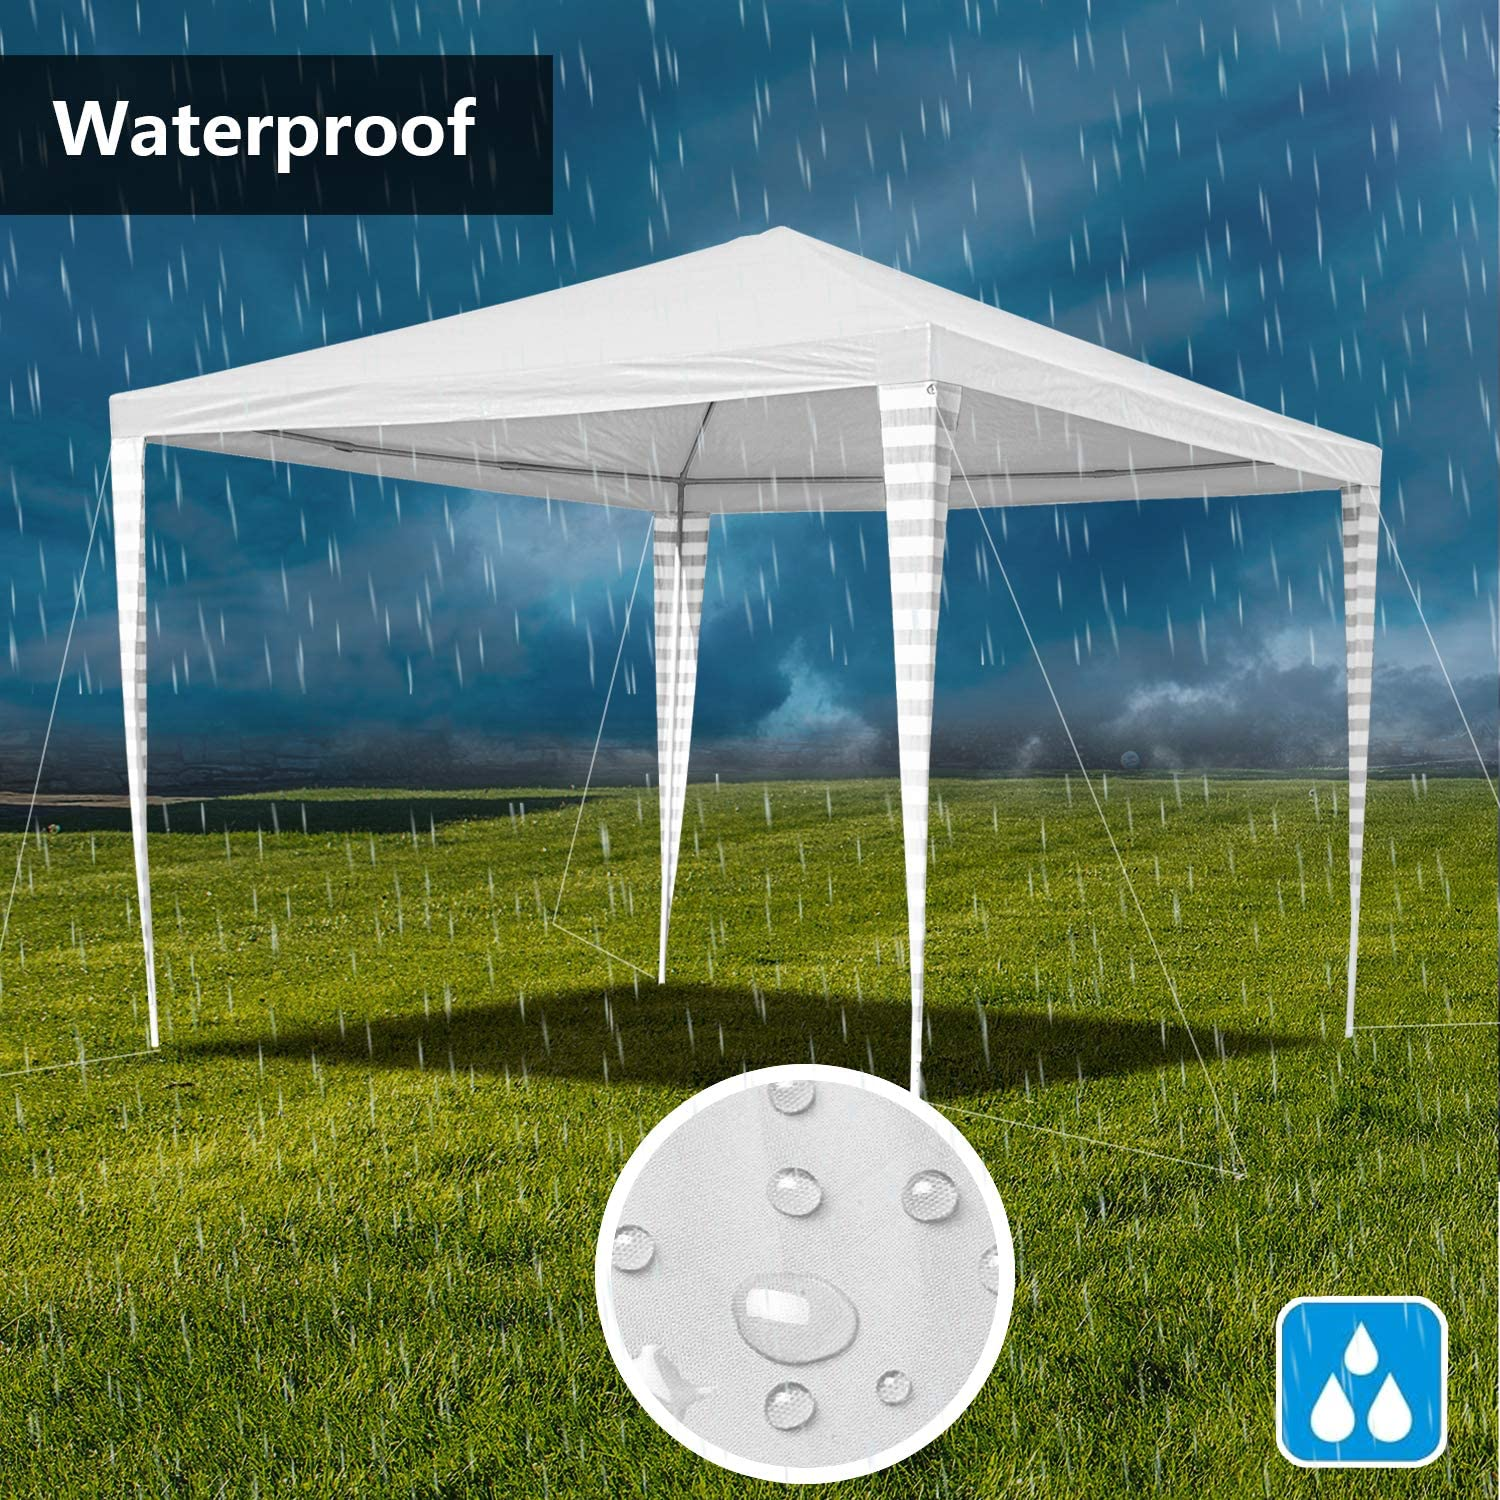 VINGO Waterproof Party Tent UV Protection Garden Tent with 4 Side Panels Garden Gazebo for Party Festival Exhibition Stands